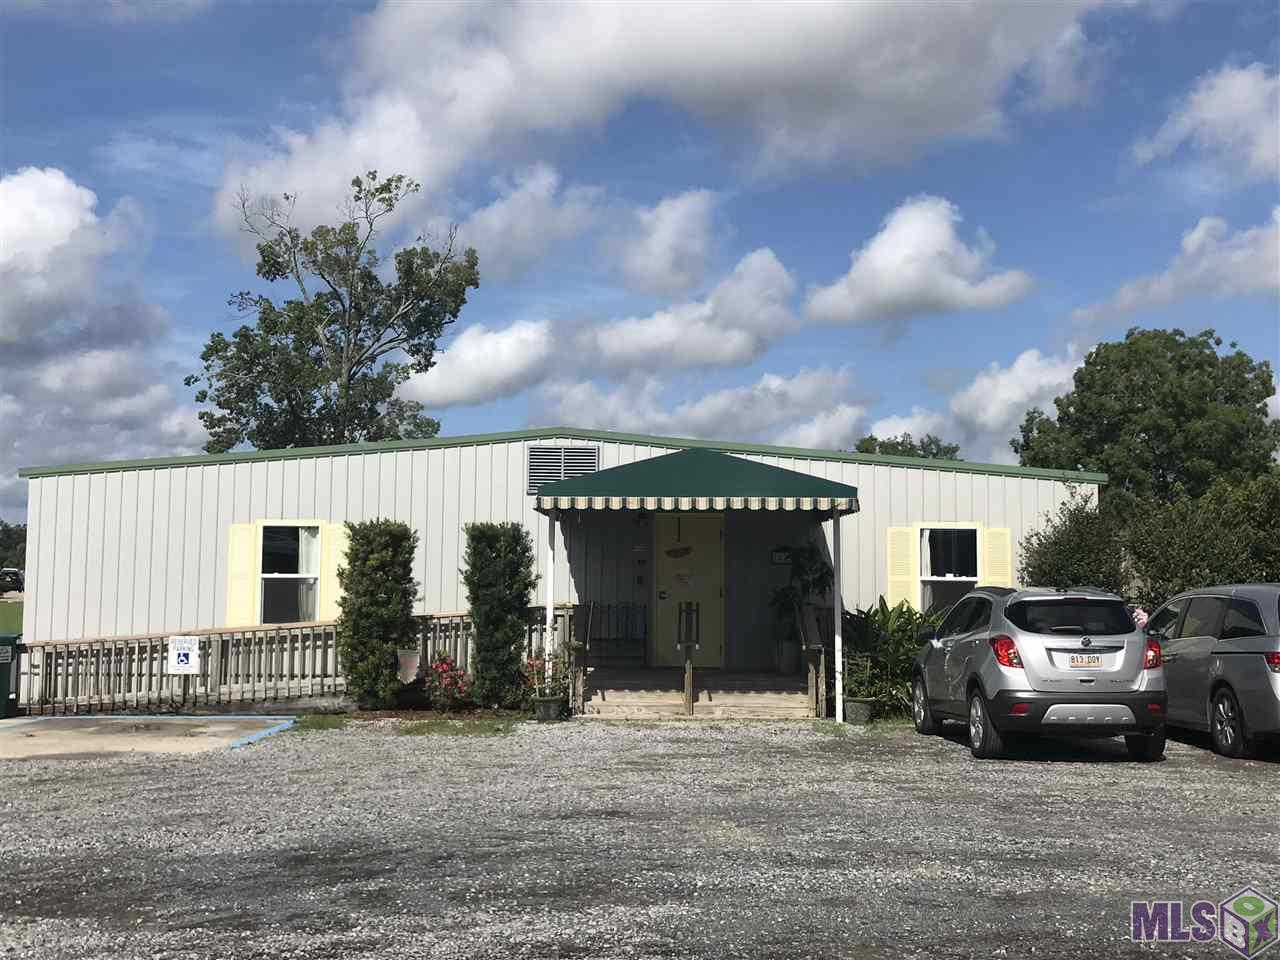 1.54 acres on Old Jefferson Hwy.  Property consists of 3 buildings.  5,400 sq. ft. Daycare, 1,632 sq. ft. Office/House and 3,030 sq. ft. Metal Storage Building.  Daycare is leased out at $3,700 per month with a current tenant.  The house and metal building on the property are vacant at this time.  WILL NOT SELL SEPARATELY.